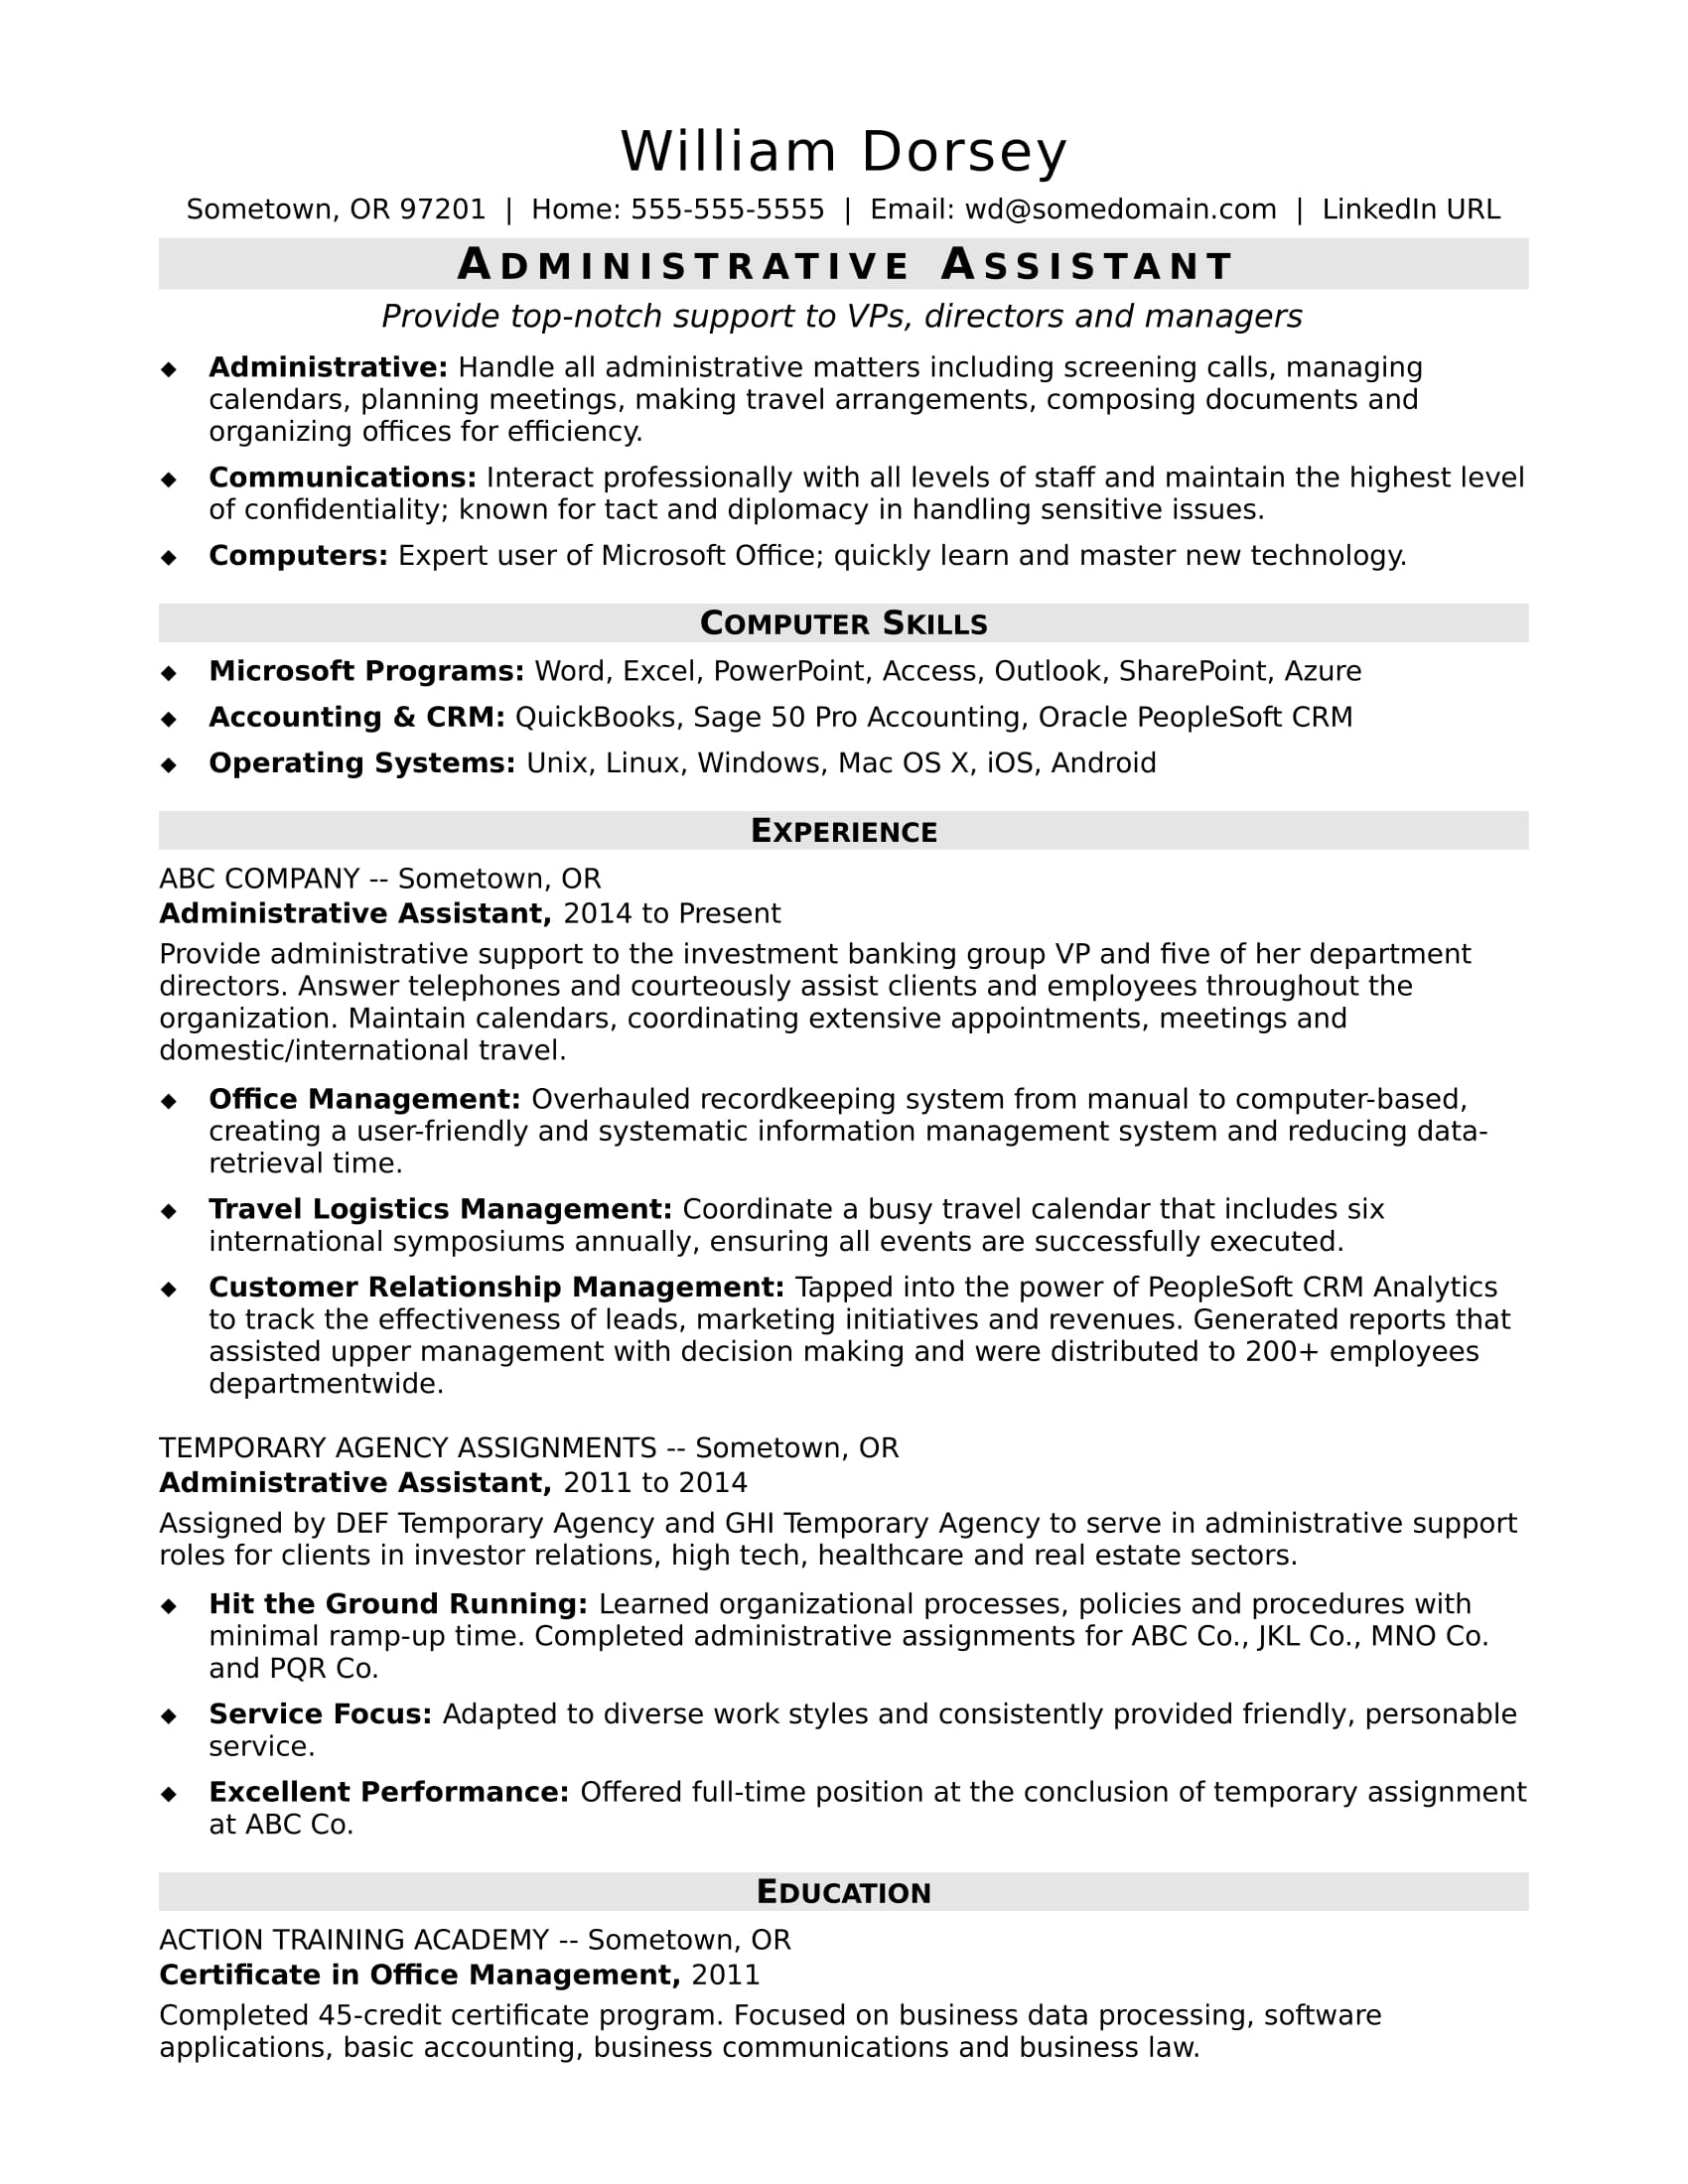 Resume Dental Assistant Skills